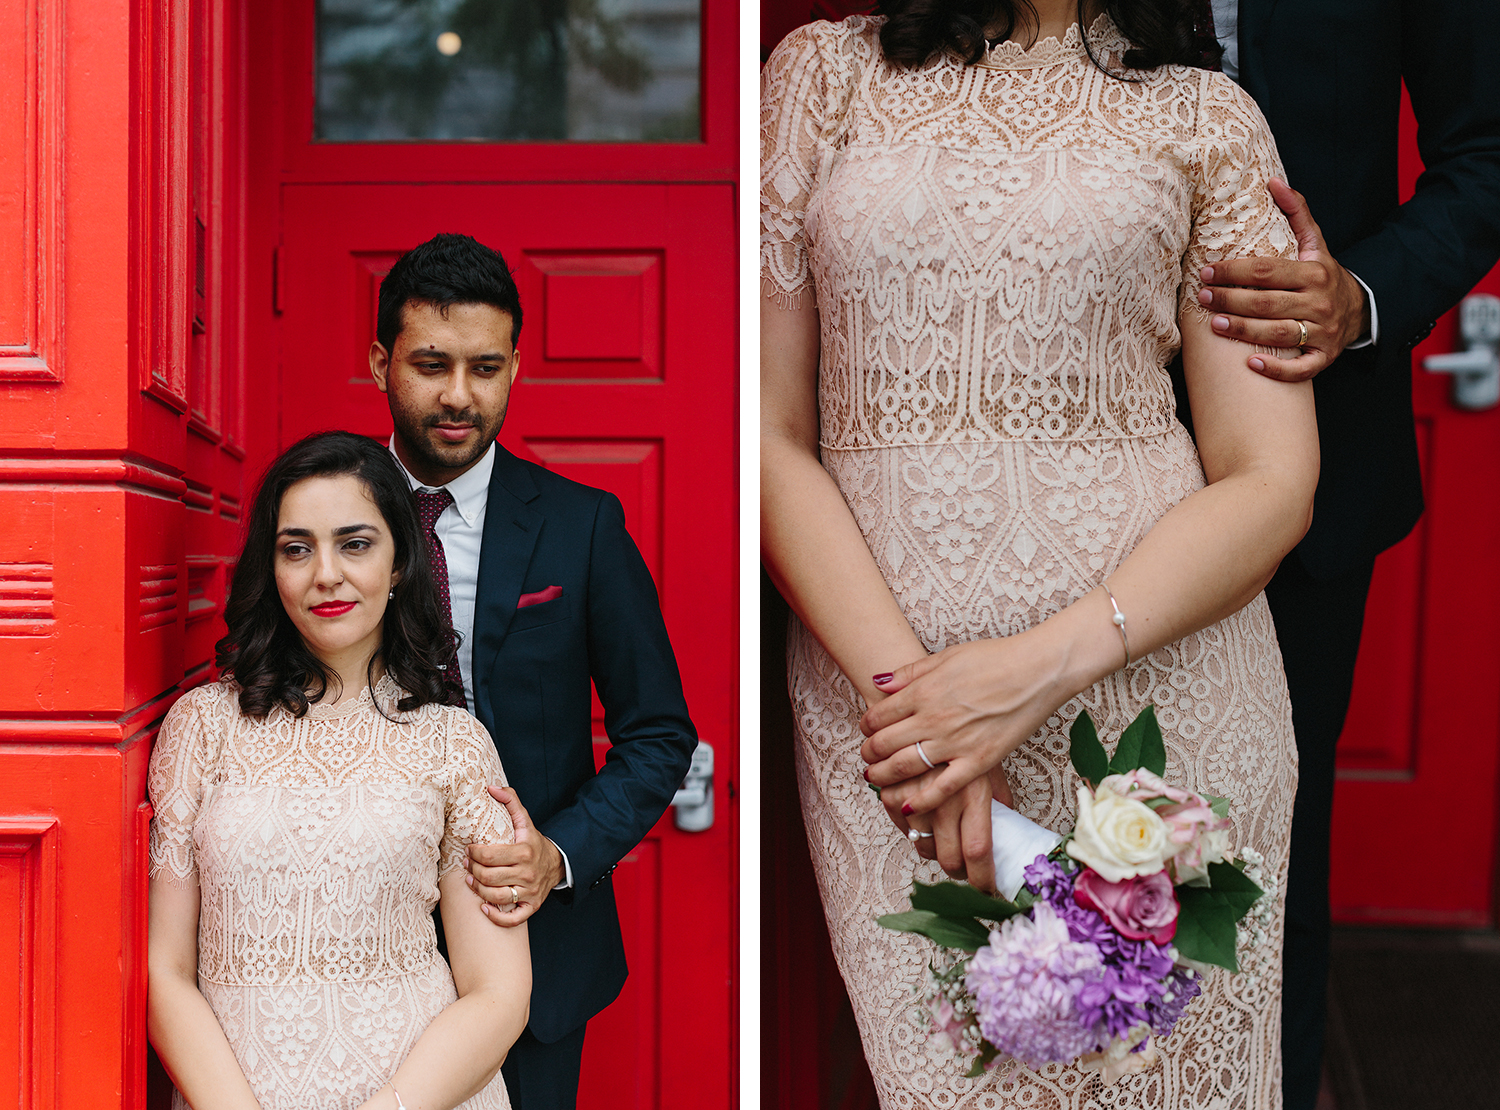 20-Best-Wedding-Photographers-in-Toronto-Downtown-Urban-Gladstone-Hotel-Venue-Inspiration-Top-Venues-in-Toronto-boutique-hotel-candid-documentary-brunch-wedding-bride-and-groom-portrait-blush-lace-wedding-dress-red-lips-inspo-coffee-shop.jpg